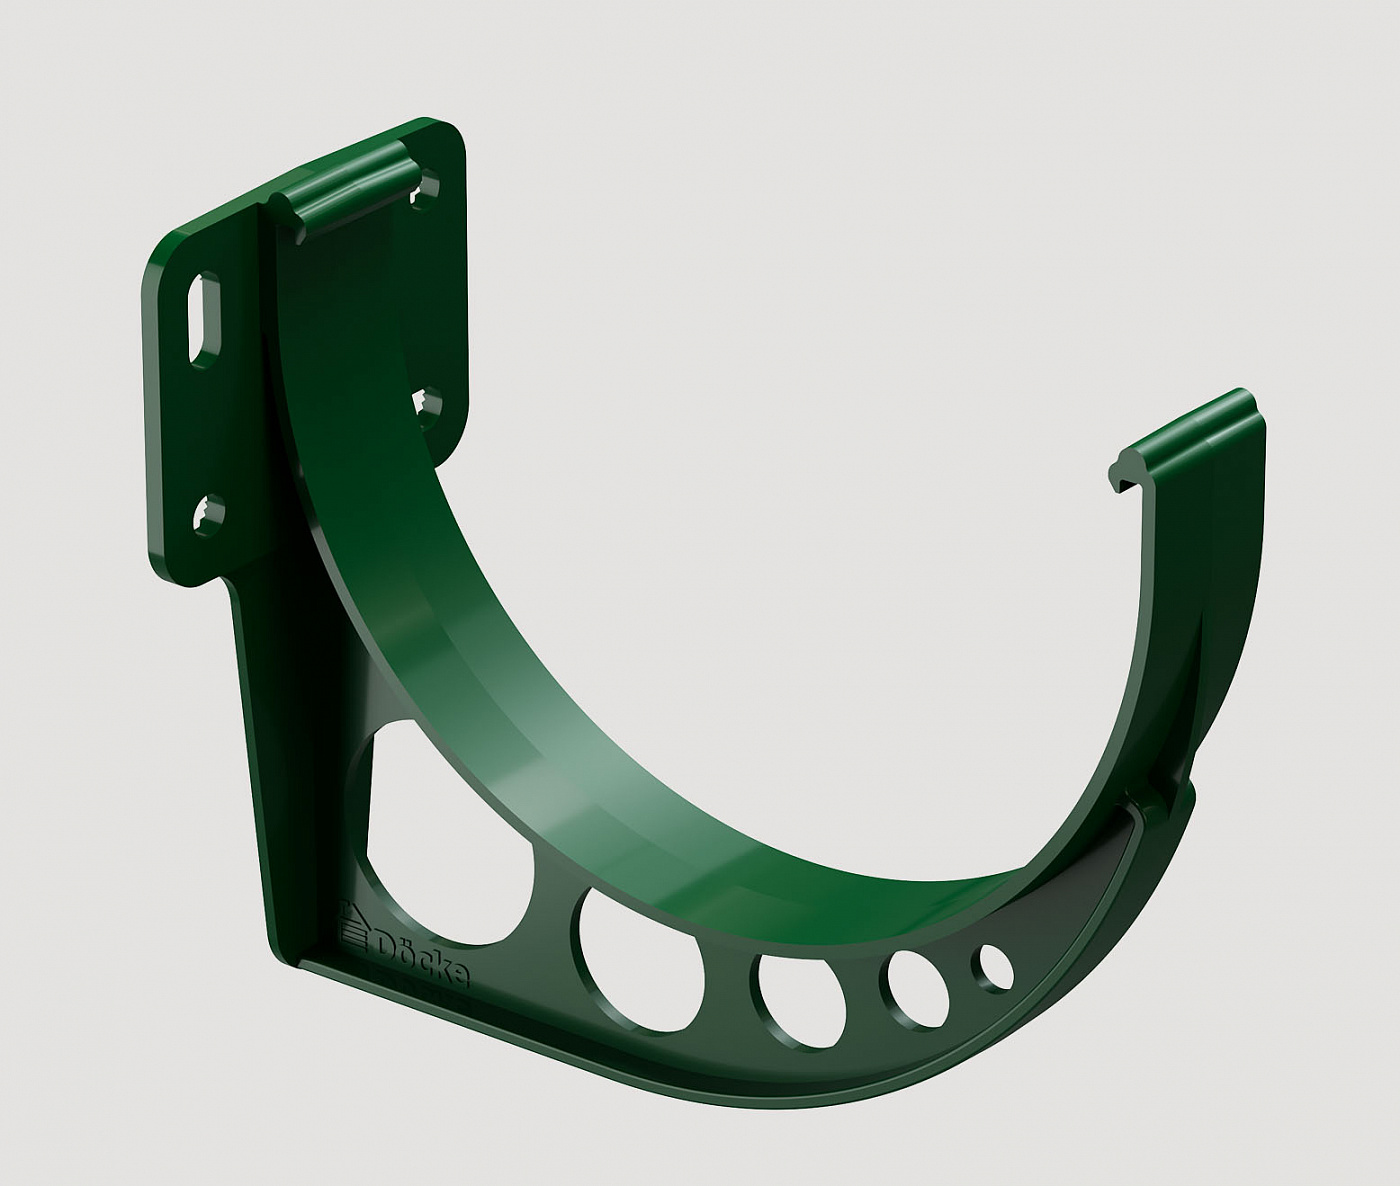 Водостоки - STANDARD SERIES Green RAL 6005 - Elements of the drainage system - Gutter bracket (PVC)